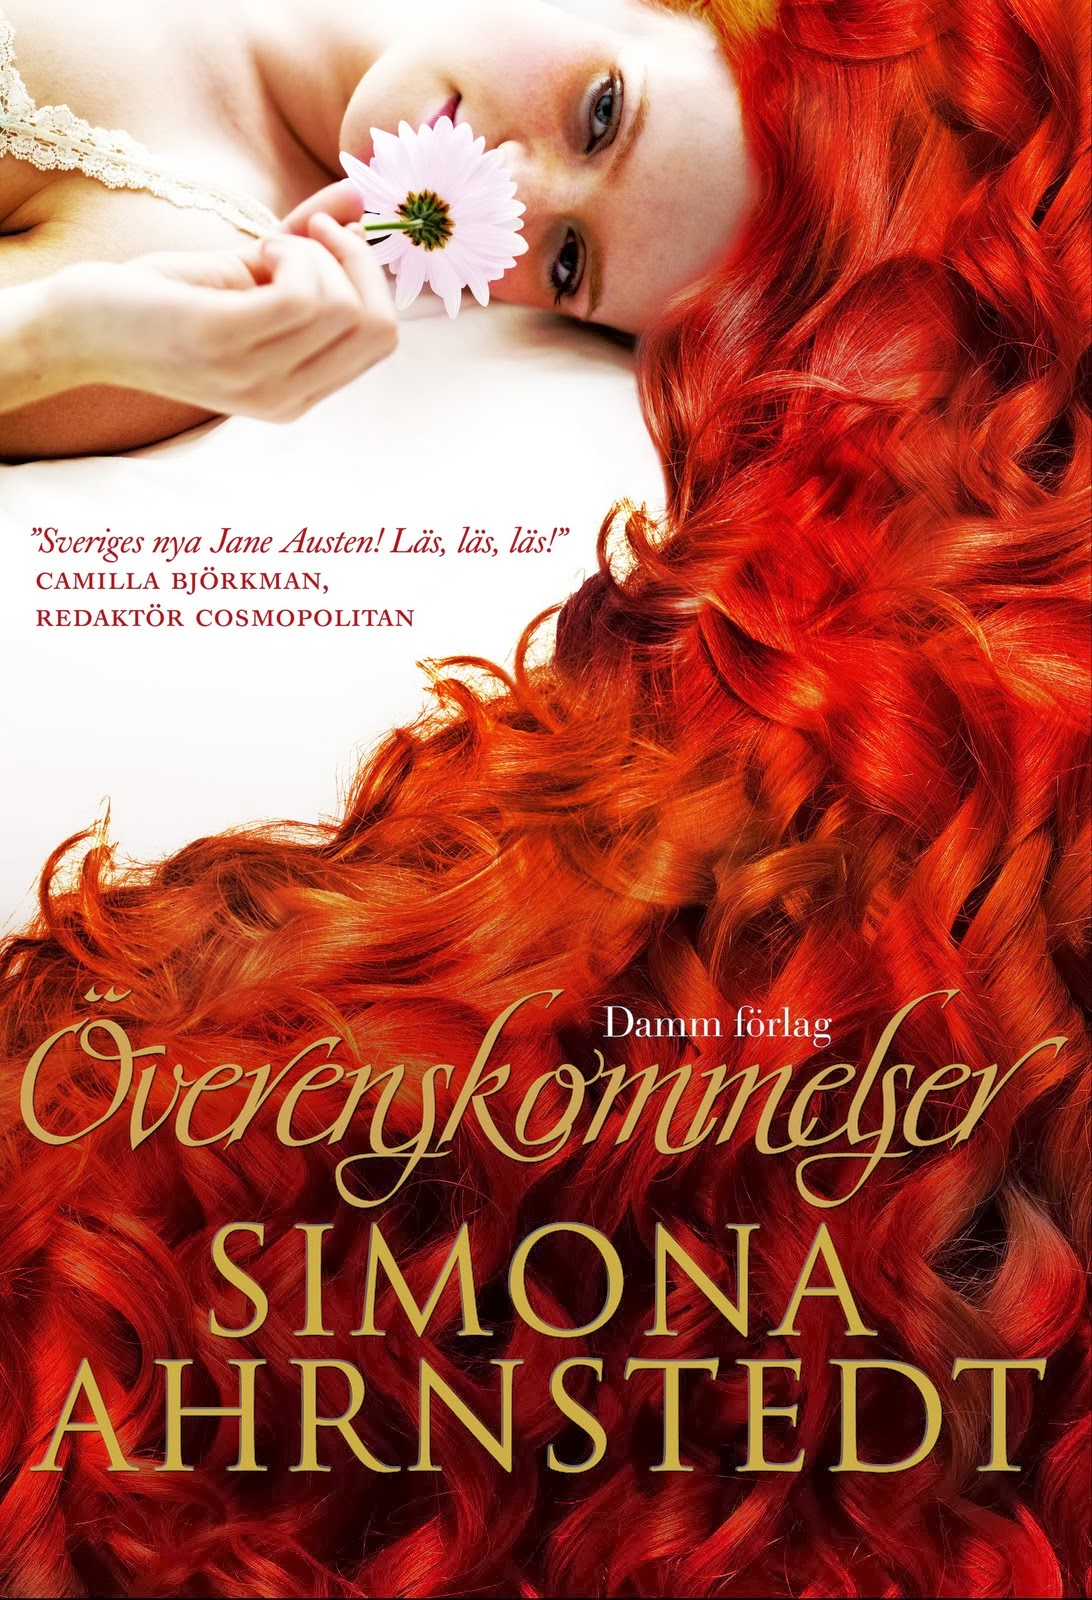 http://juliasnerdroom.blogspot.se/2013/05/recension-overenskommelser-simona.html#comment-form